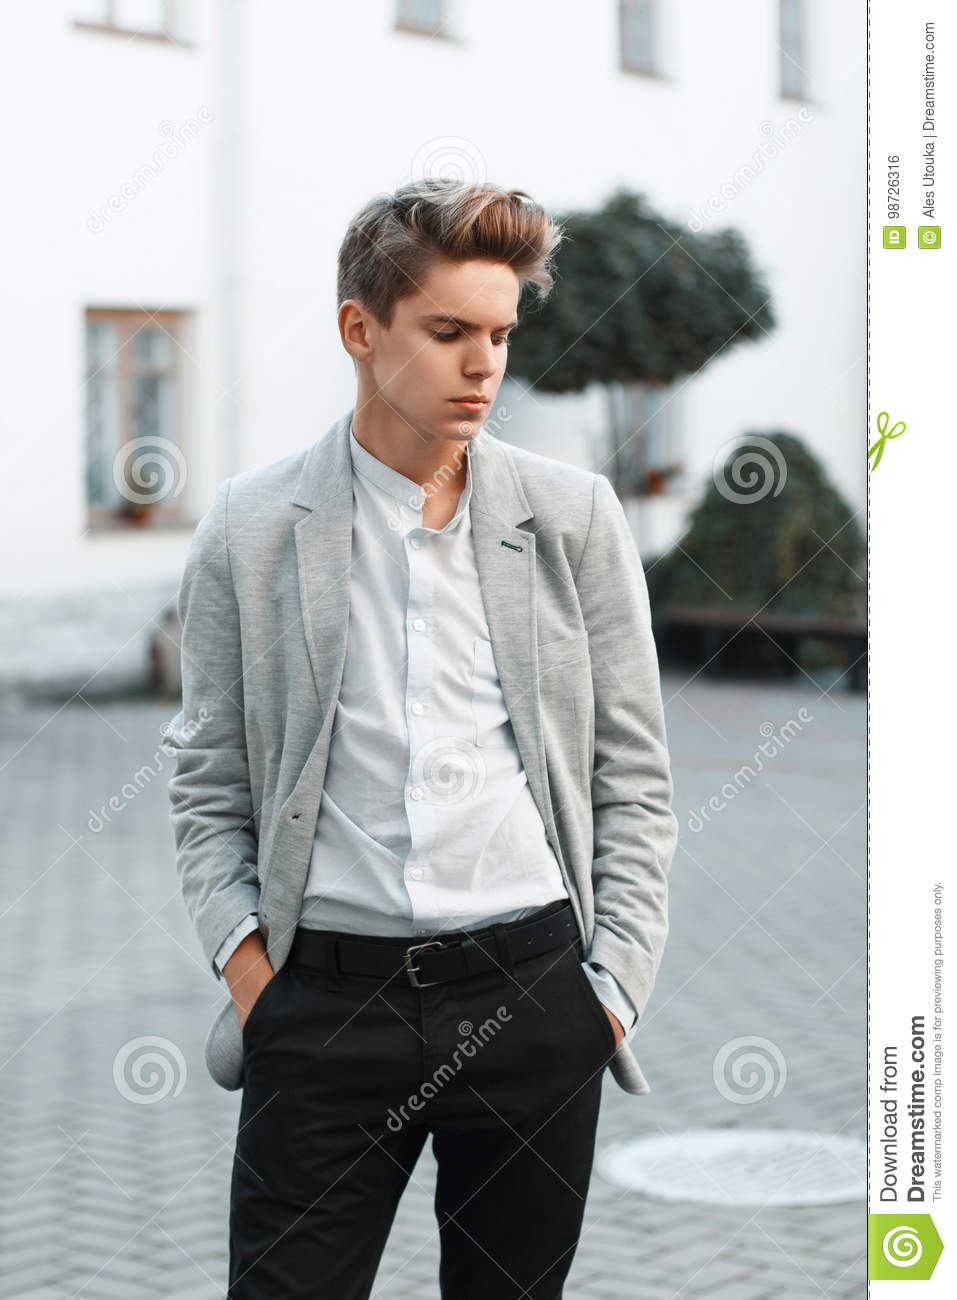 Stylish Clothes Young Handsome Guy In Stylish Clothes Stock Photo Image Of